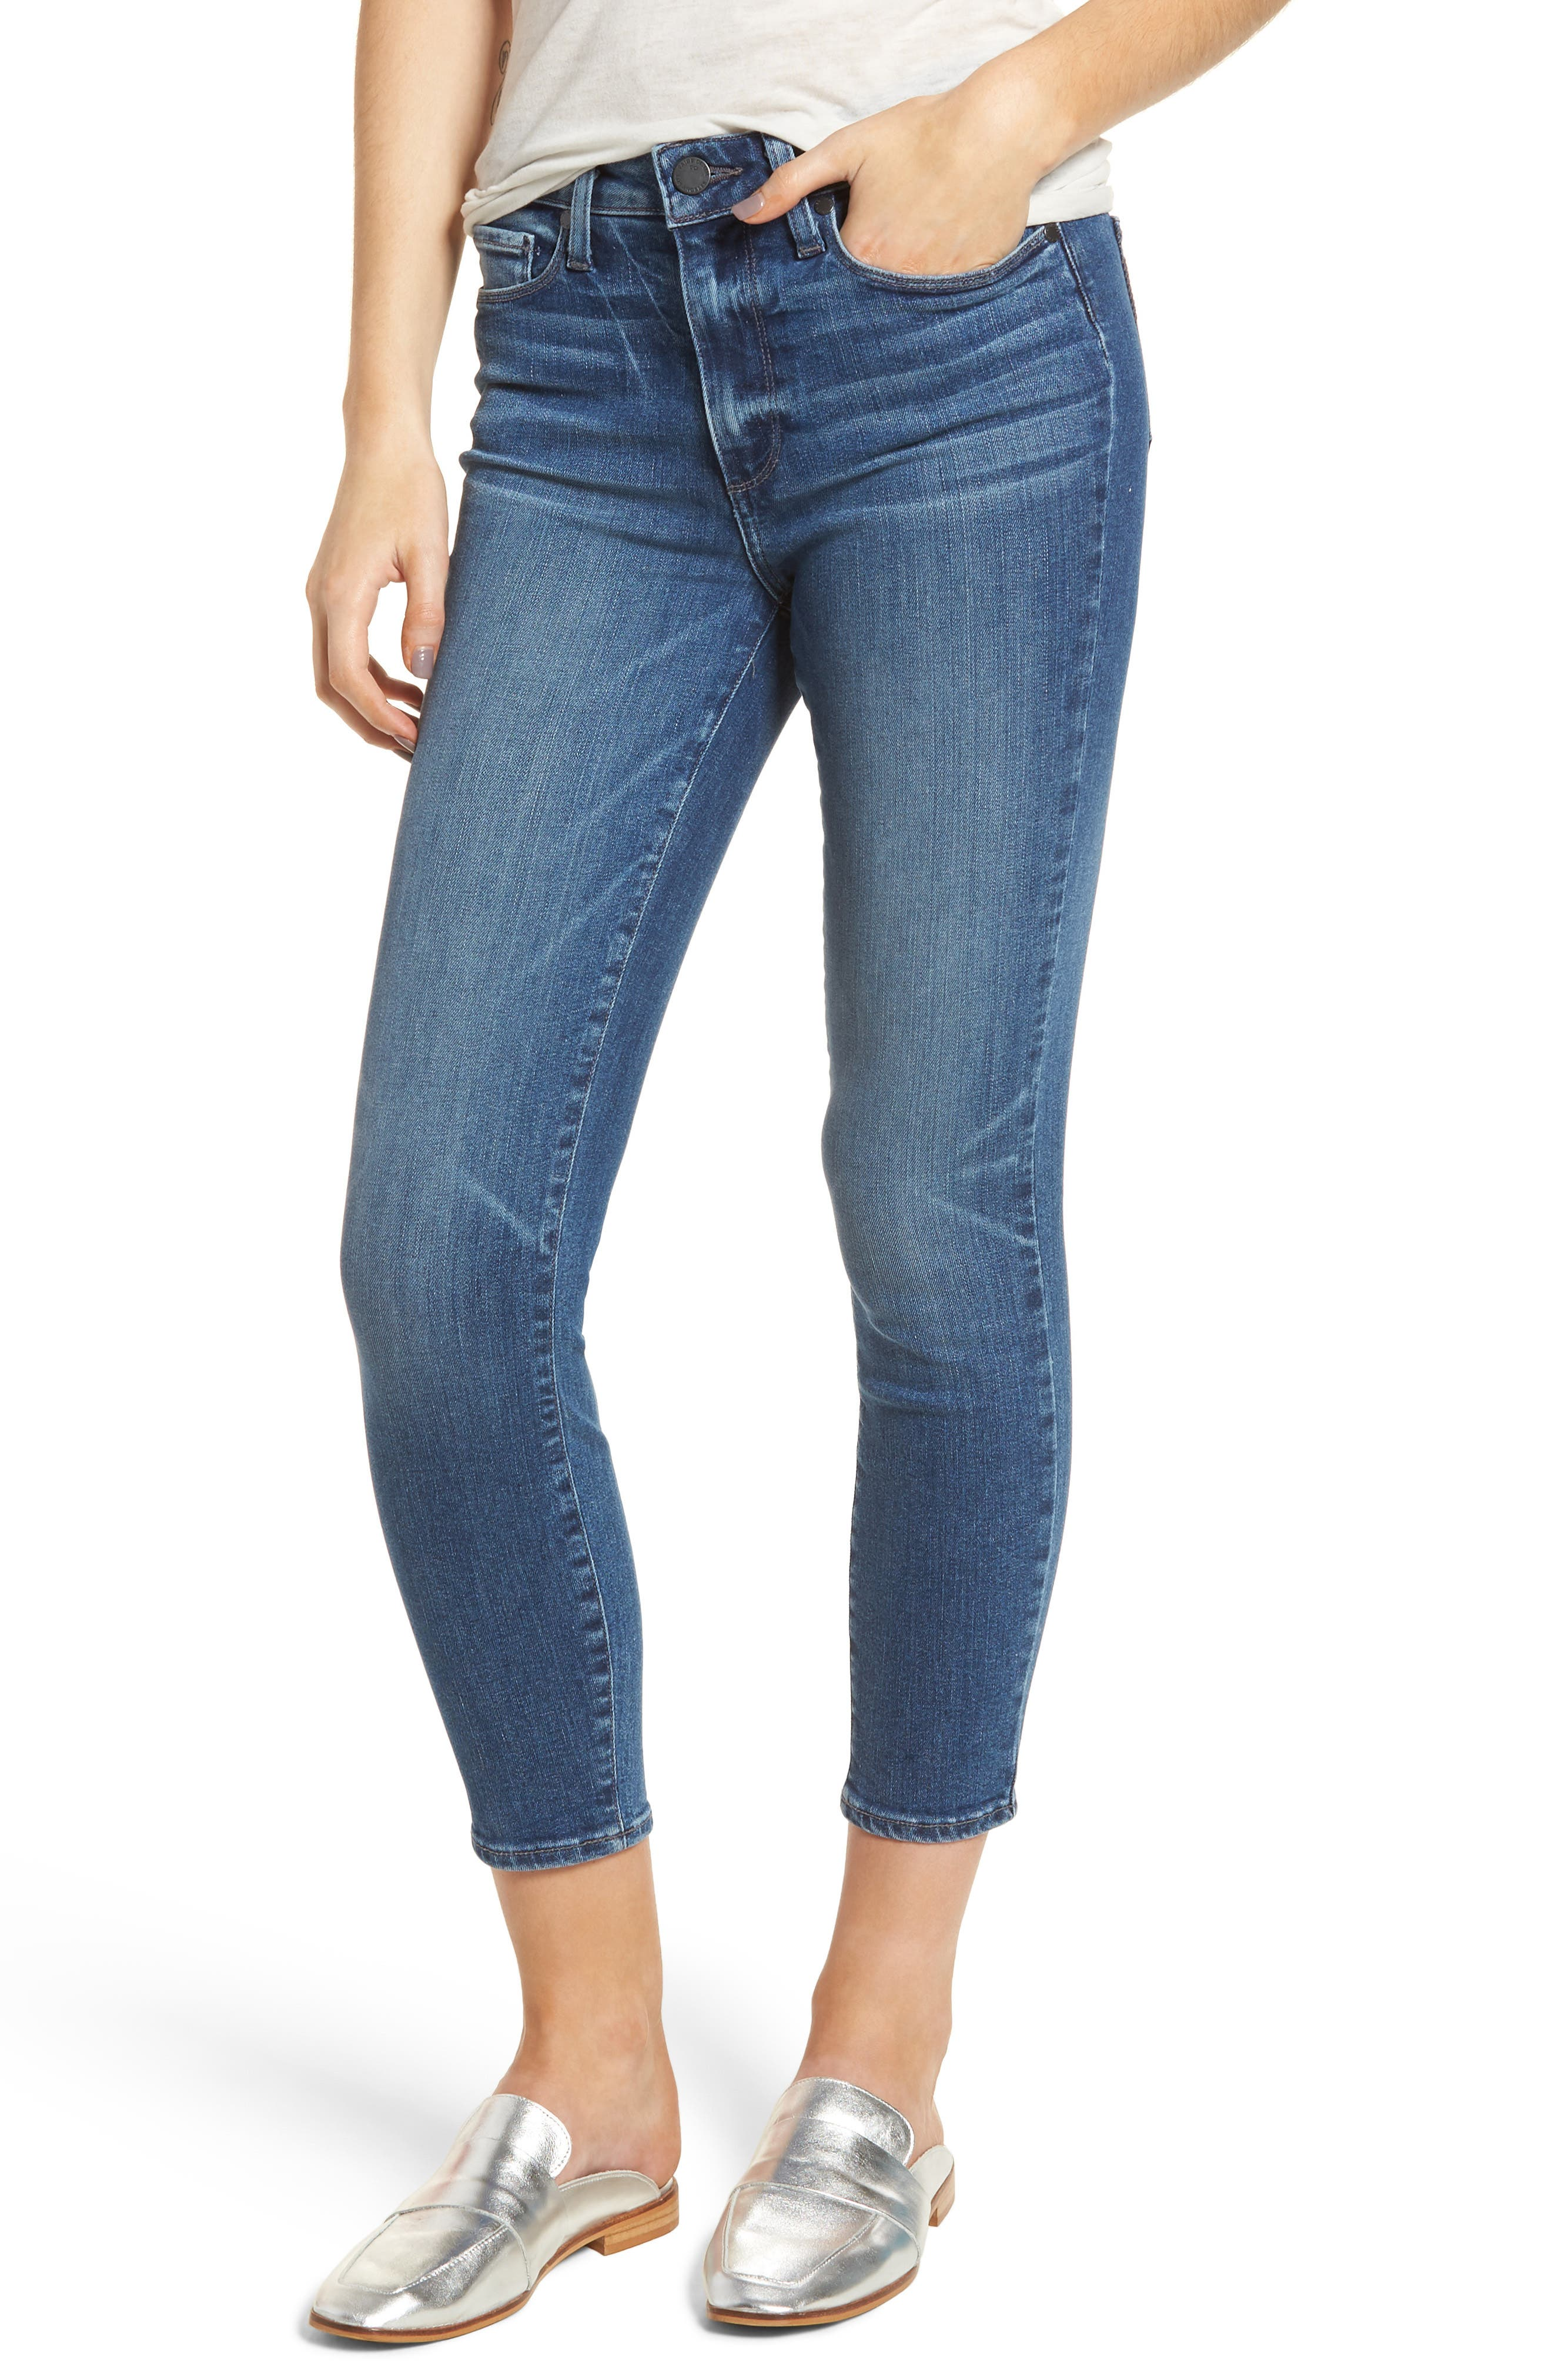 Hoxton High Waist Ankle Skinny Jeans,                         Main,                         color, 400